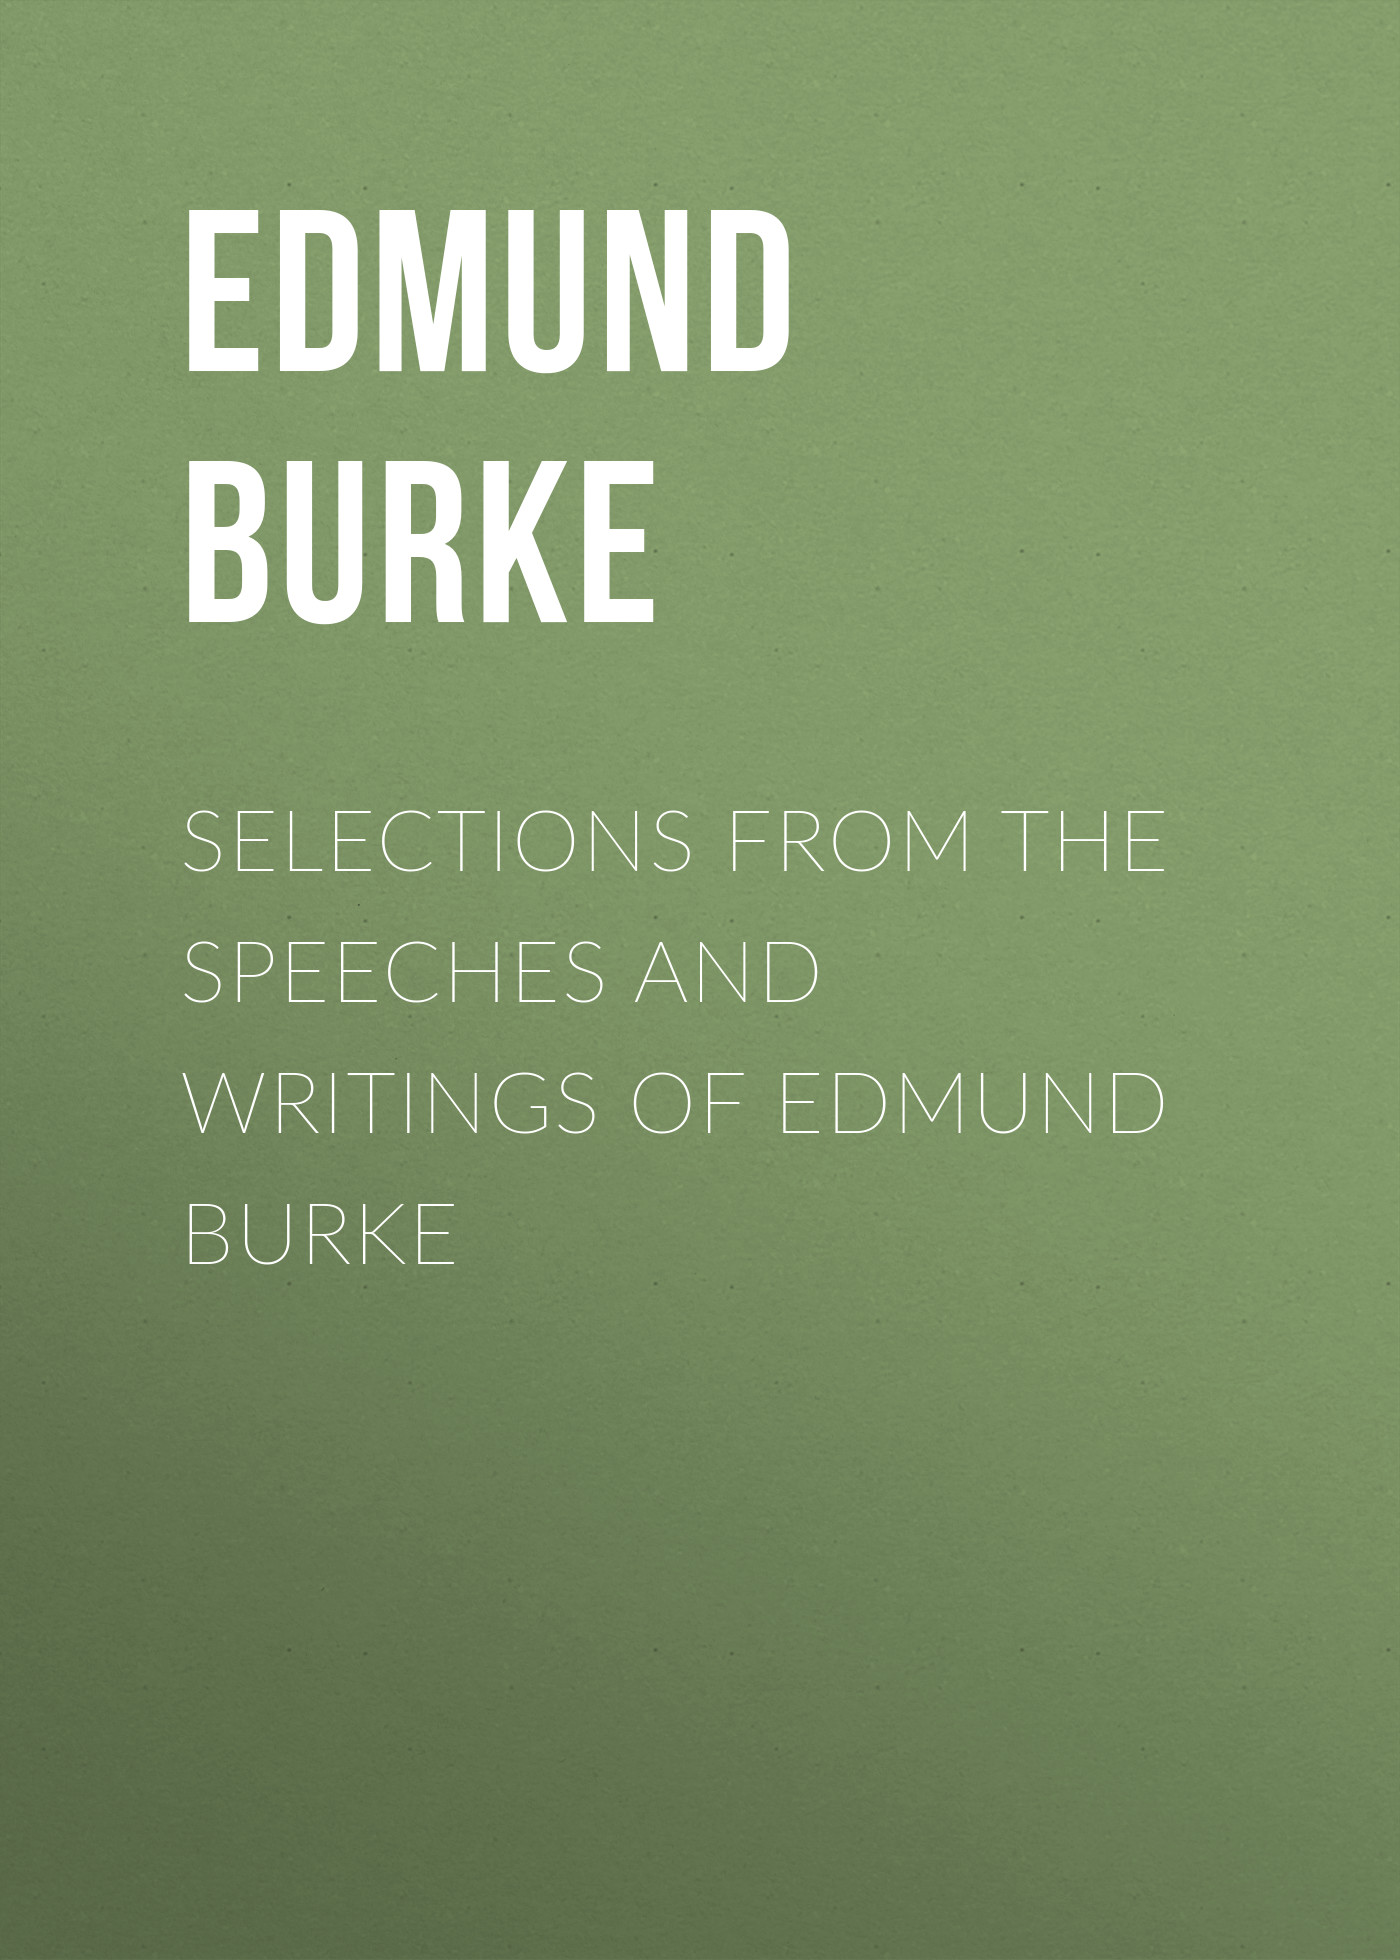 Edmund Burke Selections from the Speeches and Writings of Edmund Burke недорго, оригинальная цена